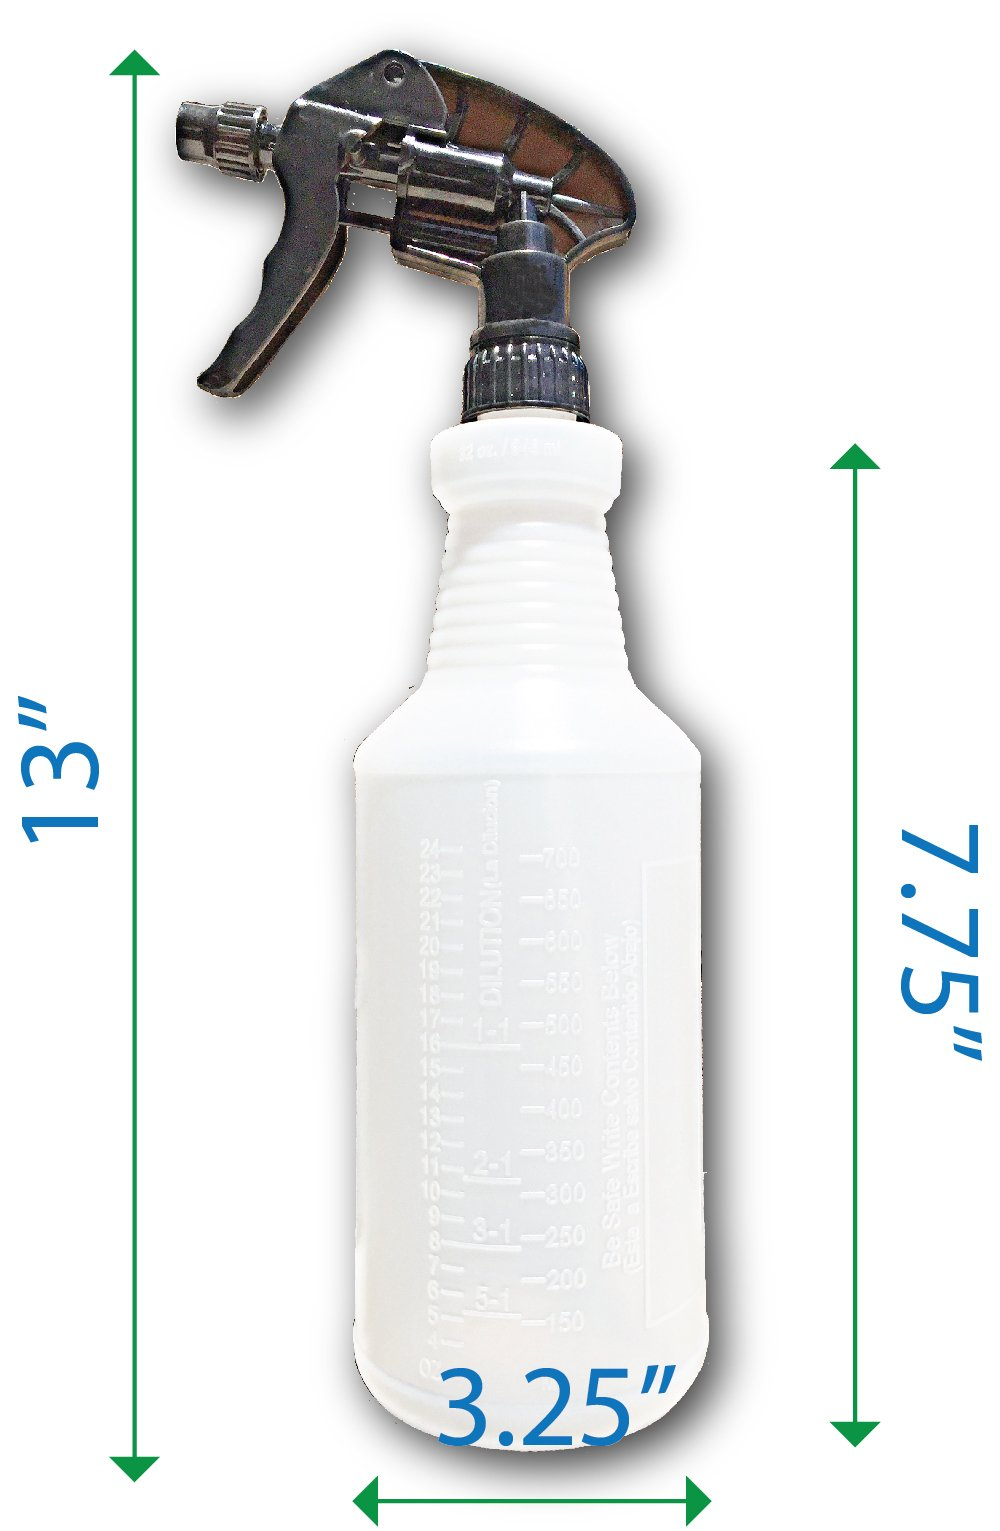 Industrial Large Spray Bottles for Cleaning Solutions - Measurement Graduations - Chemical Resistant - Extra Large 32 oz - Leak Resistant - Car Detailing - Janitorial by S & E Packaging (Image #2)